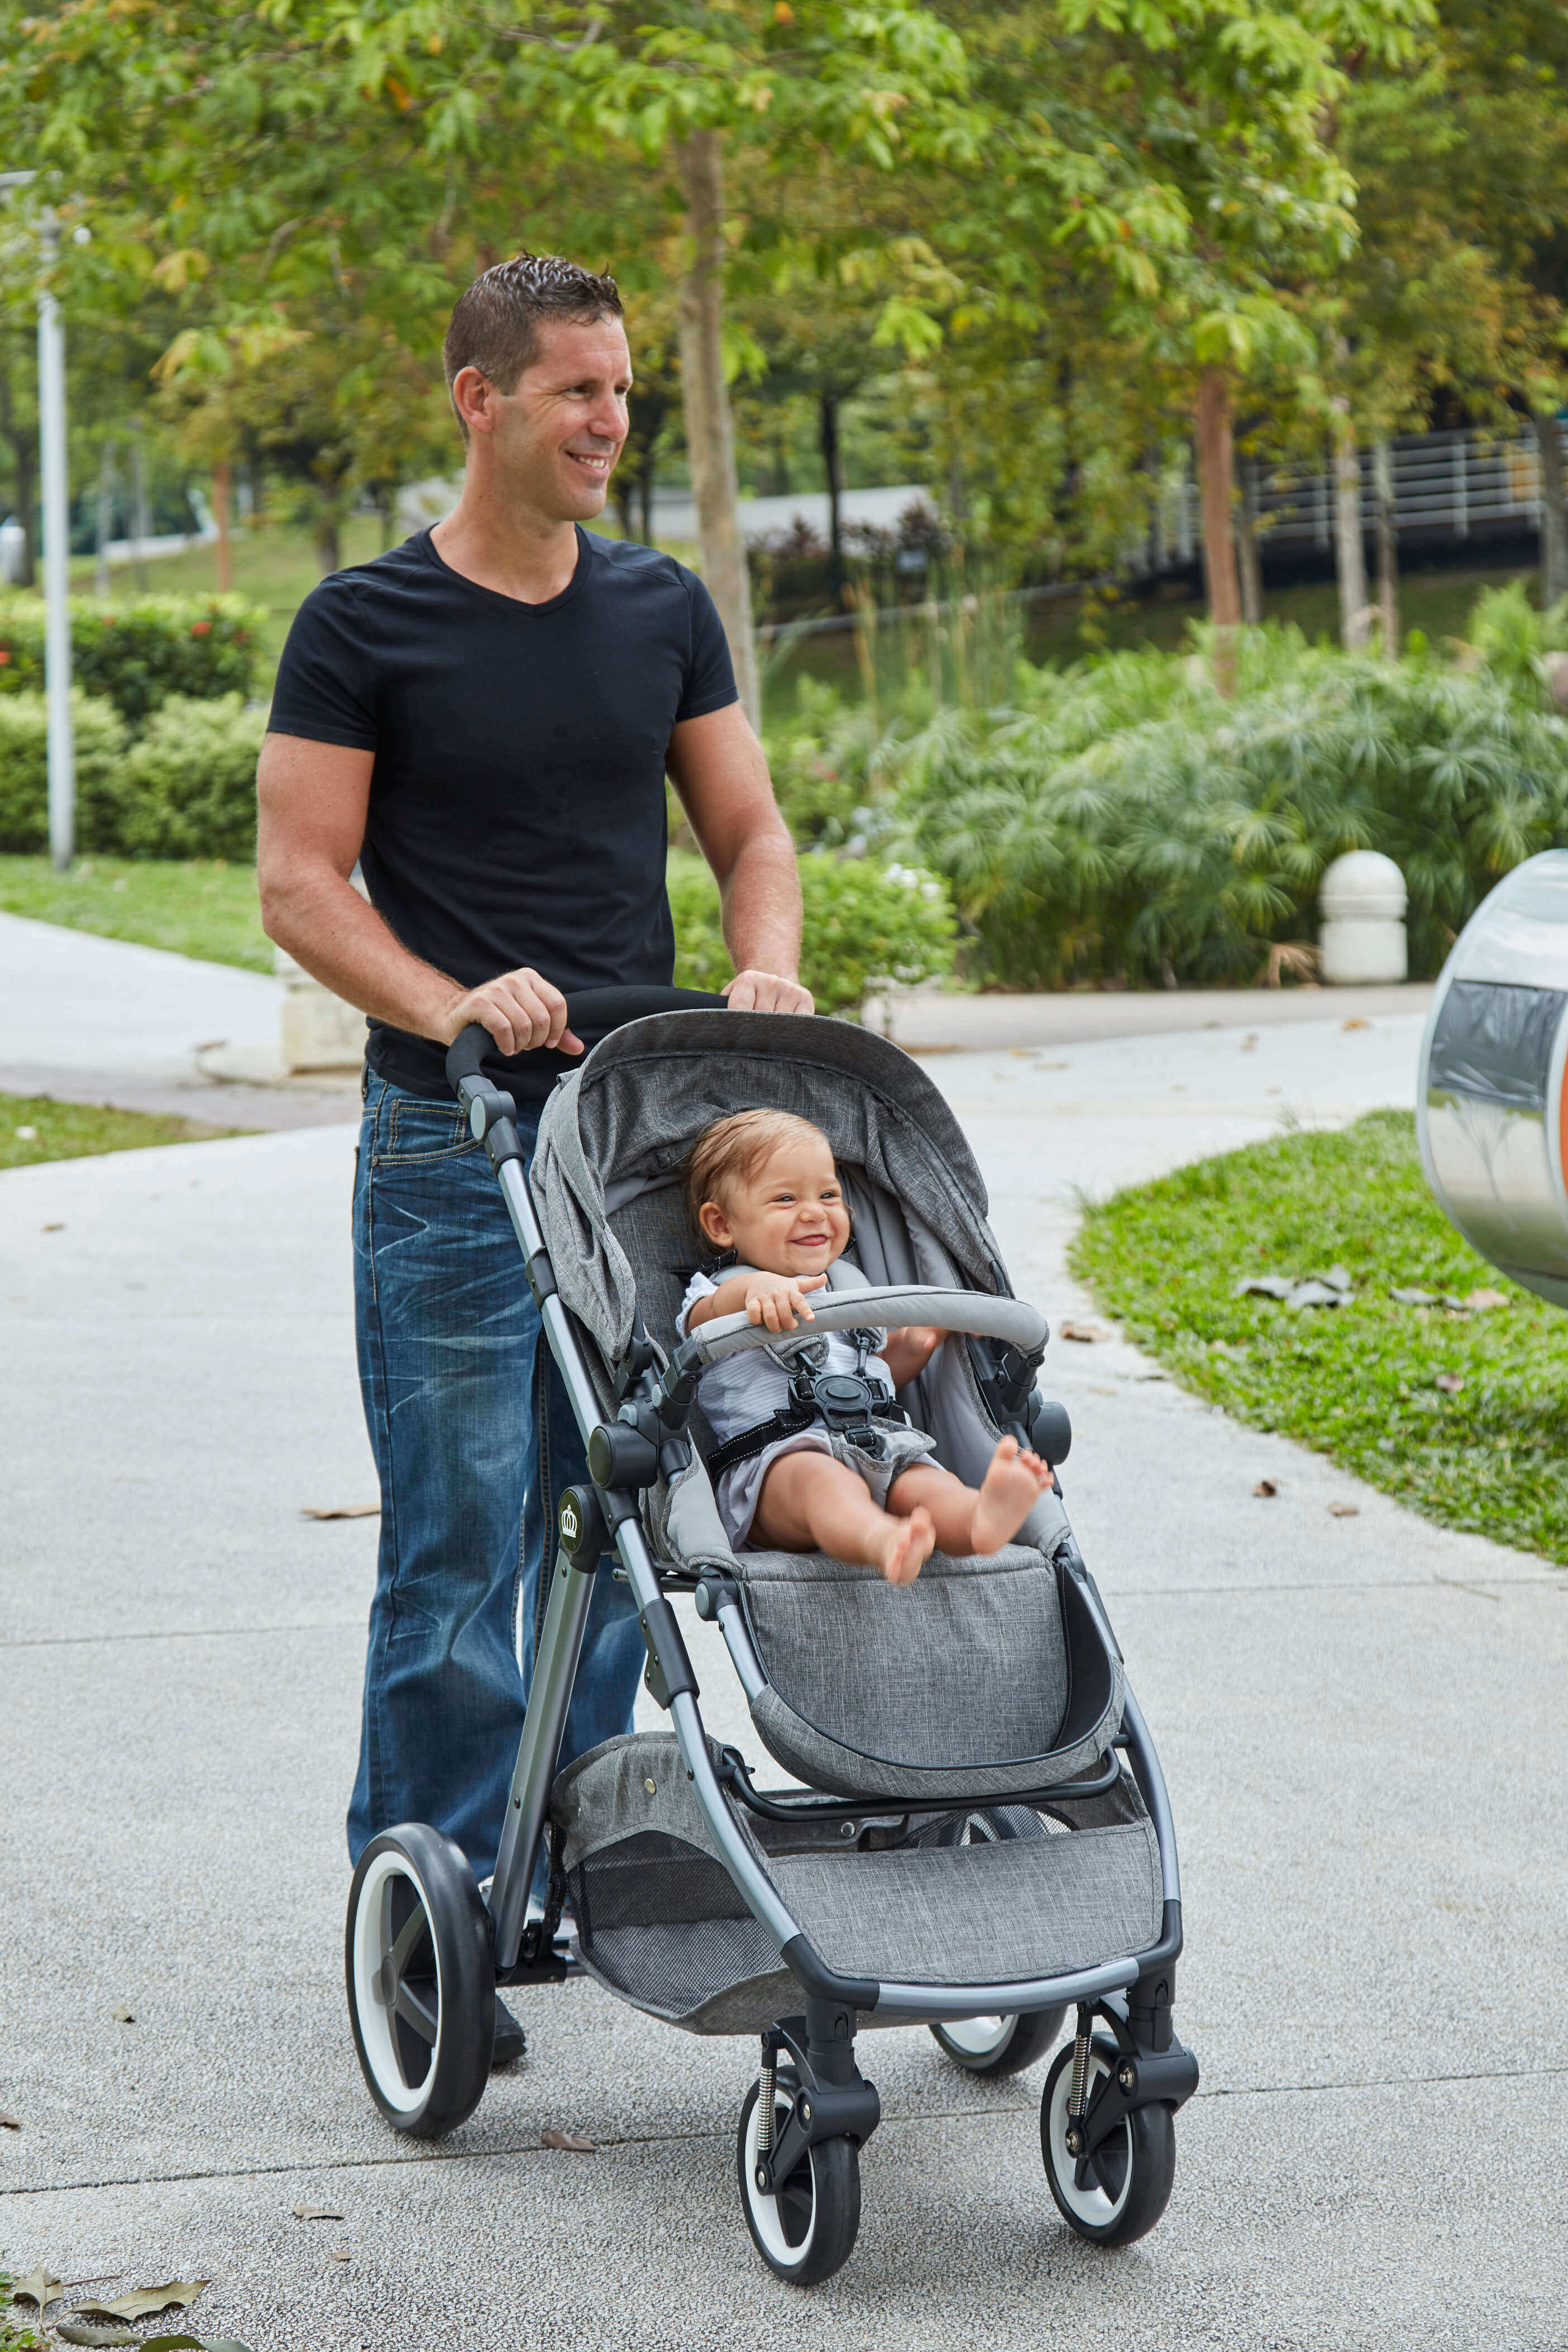 Mimosa Enjoy The Journey Cabin Strollers Travel Strollers Ergonomic Carriers Feeding And Food Preparation